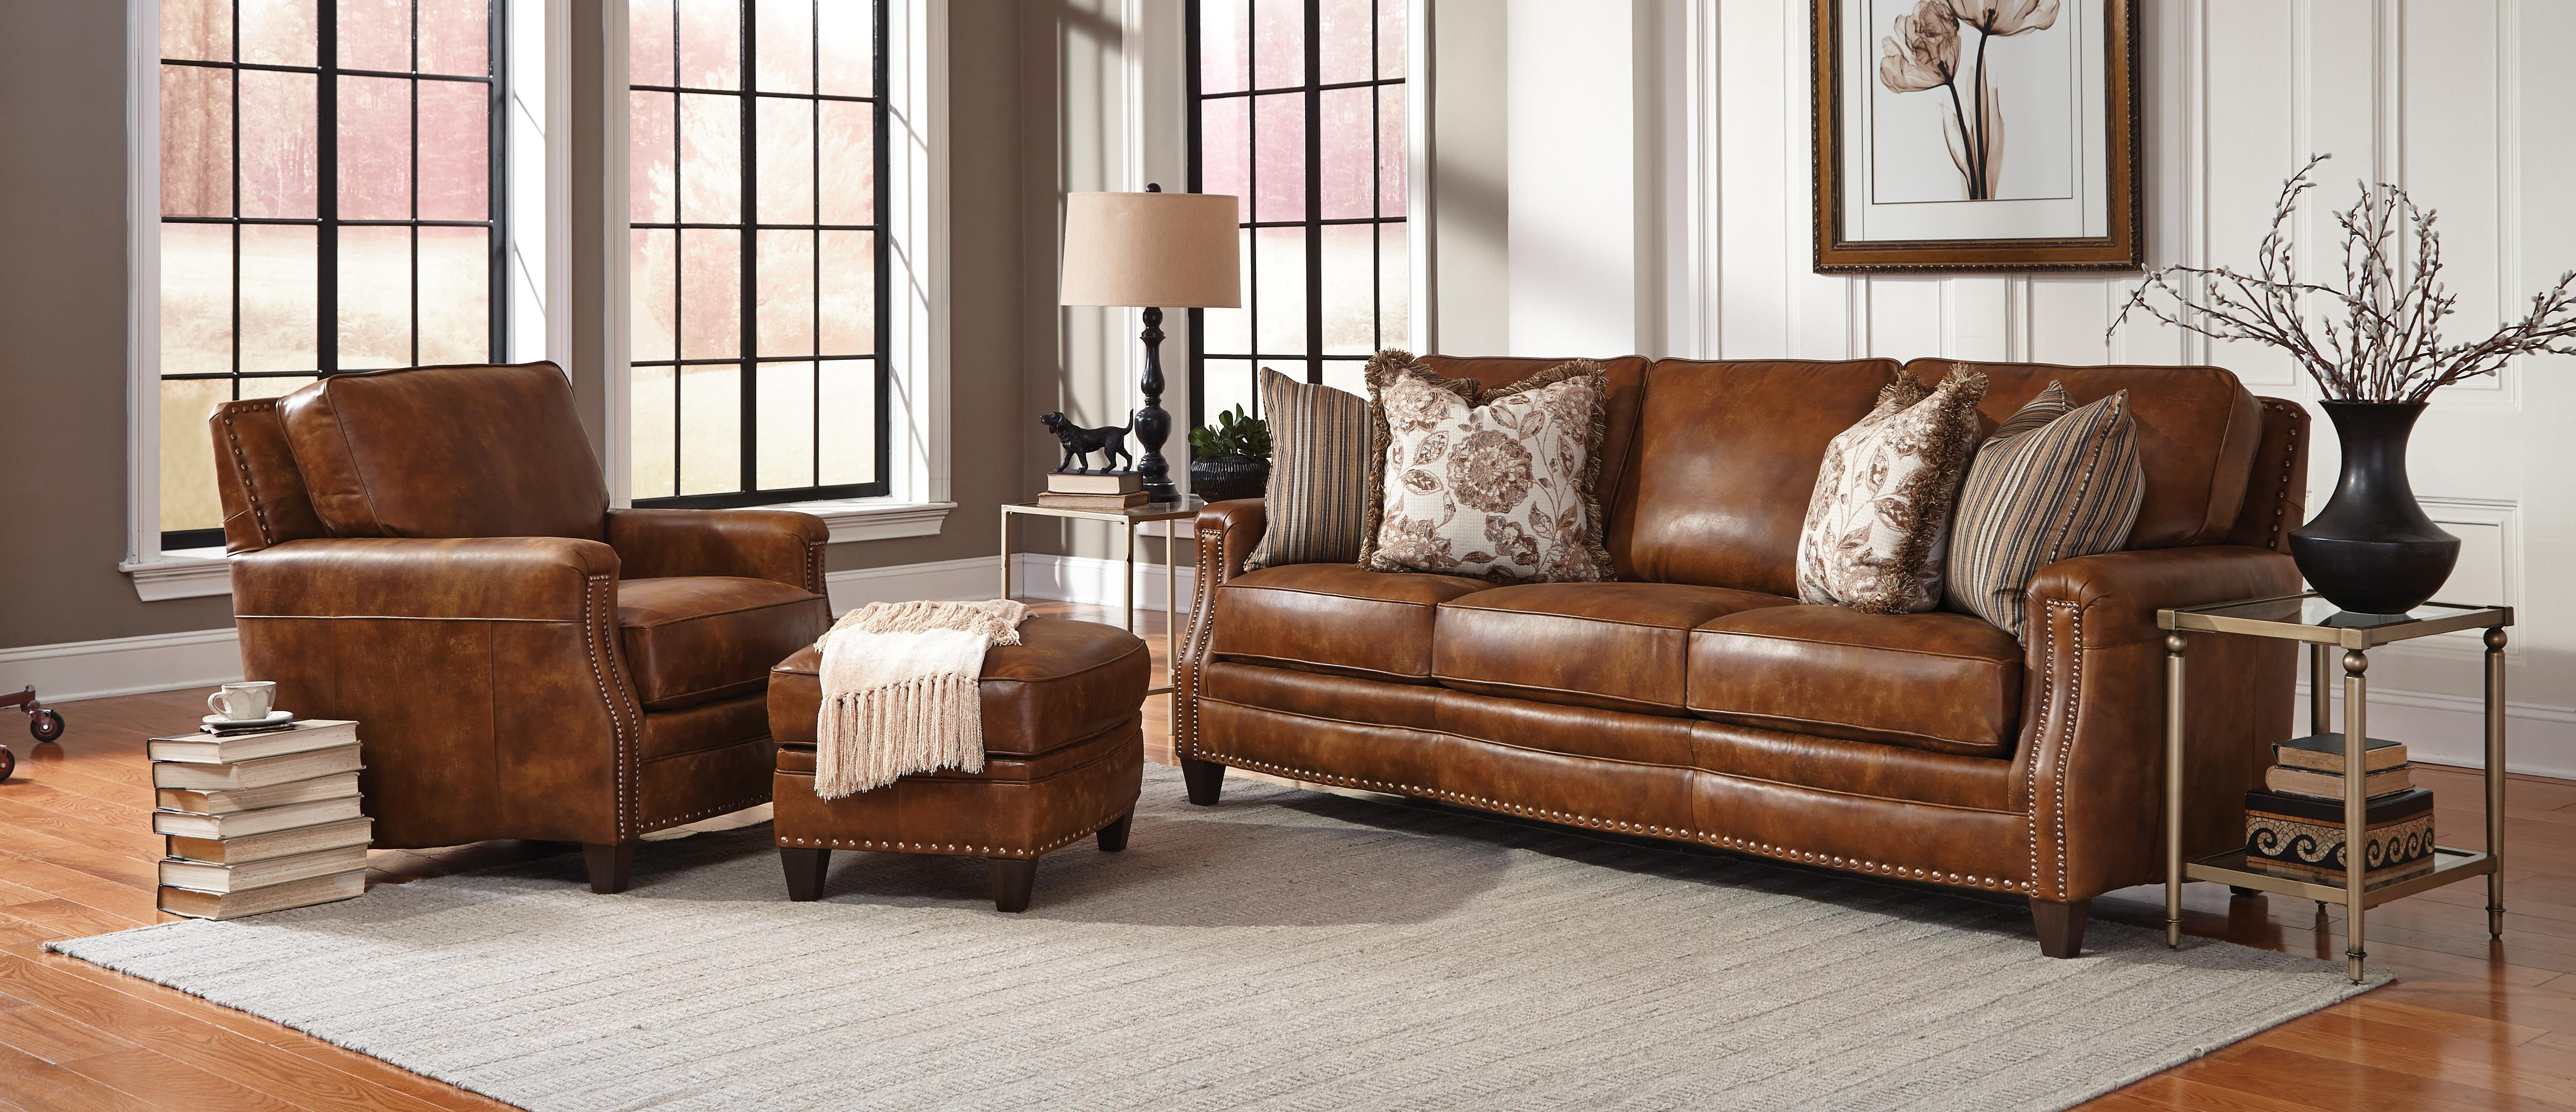 Leather Room with Pillows